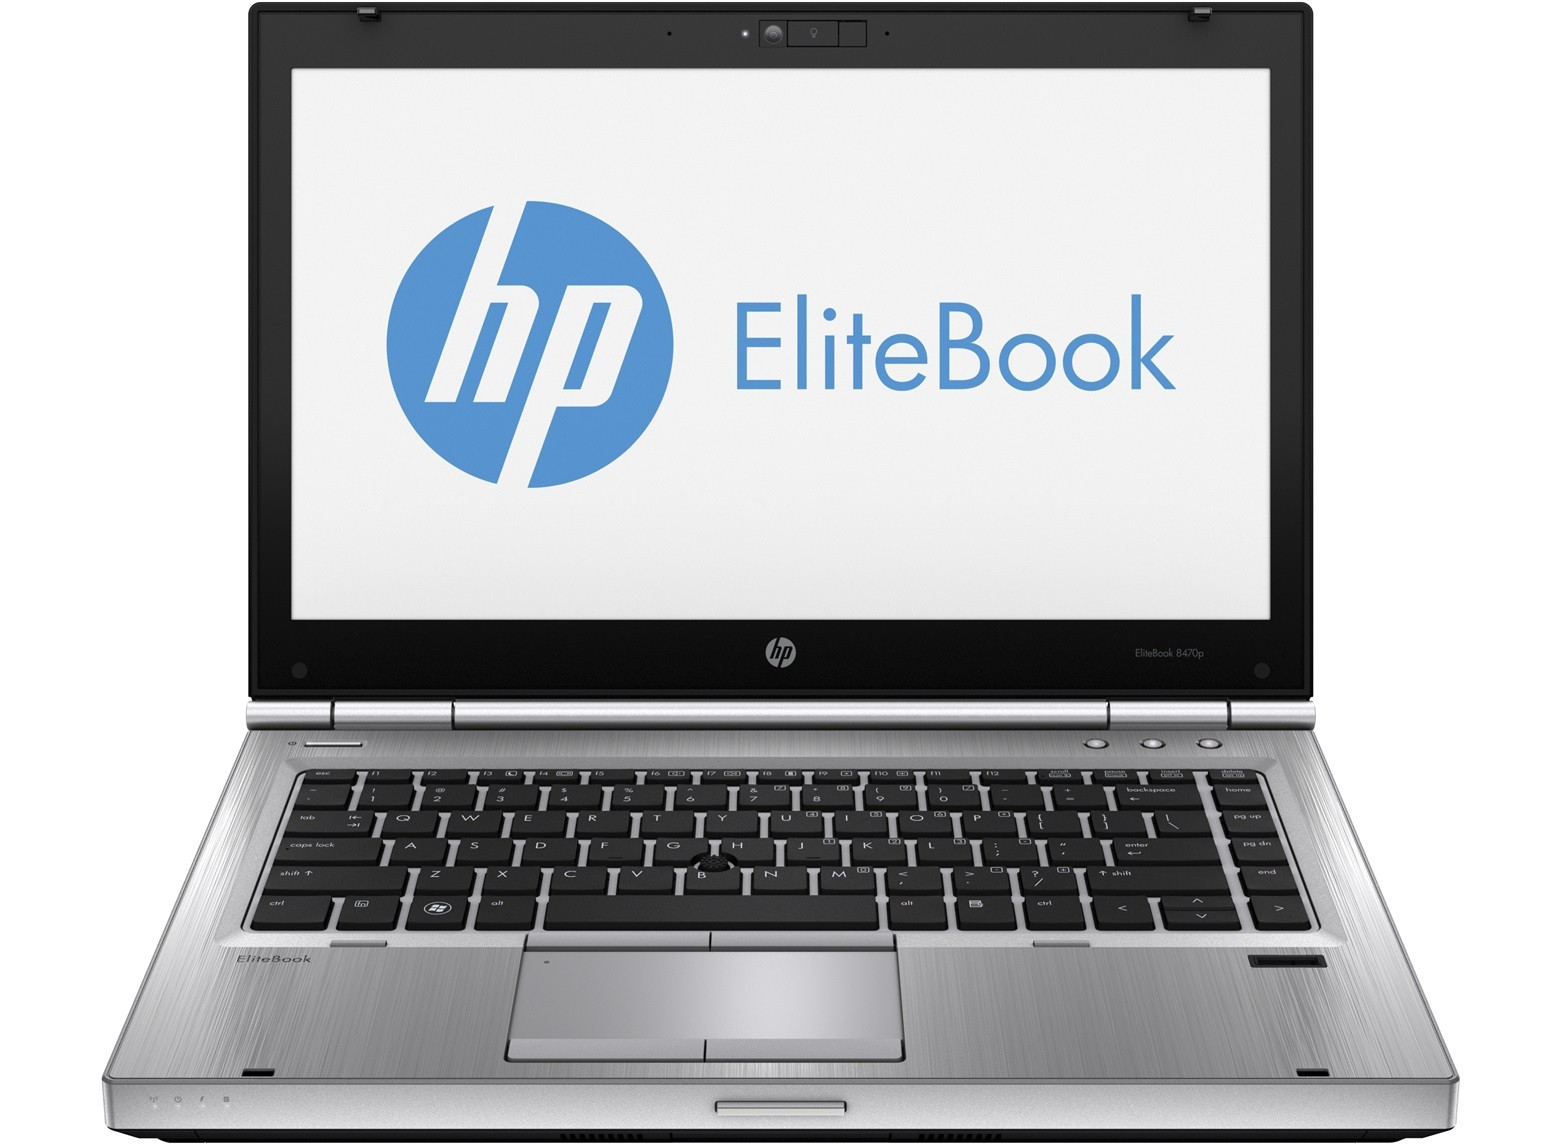 Hp elitebook 8470p intel i5-3320m 3th gen 4gb 320gb hdmi